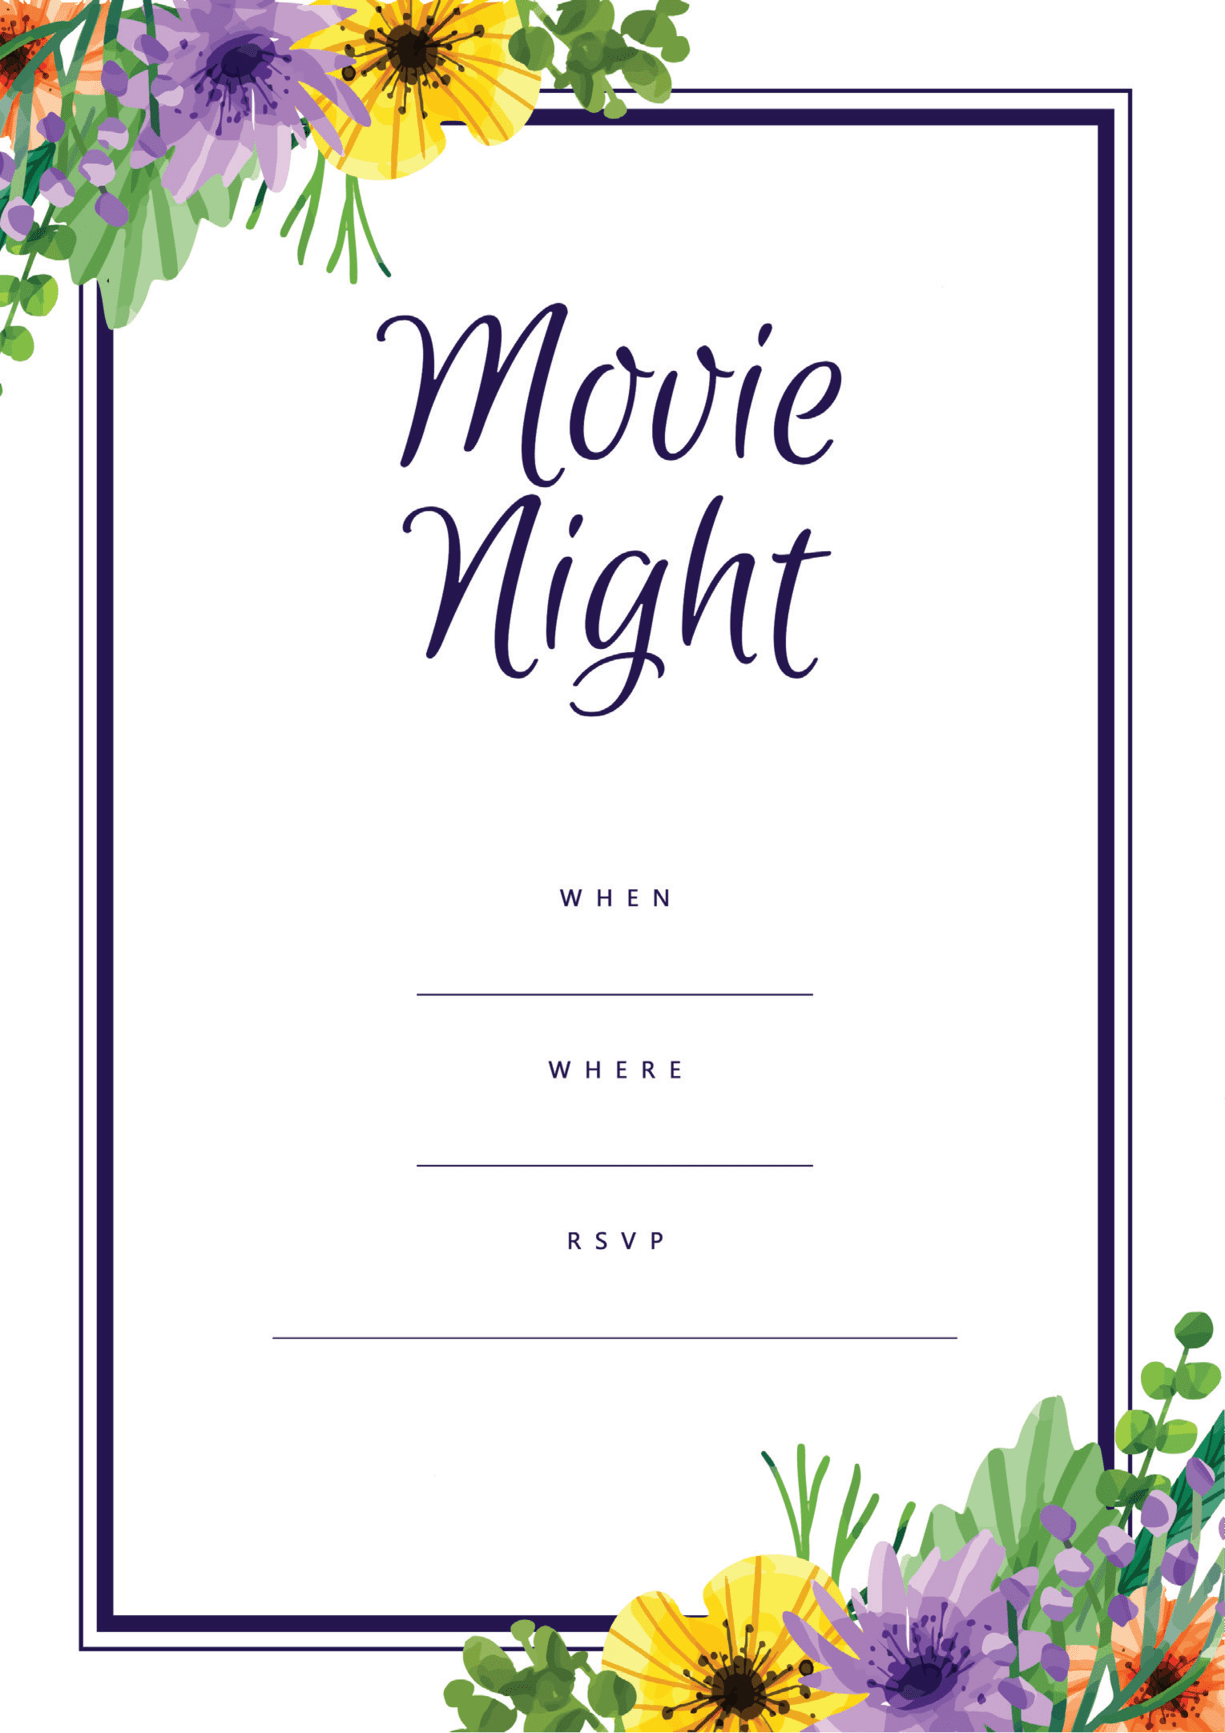 Movie Night party invitation with floral border